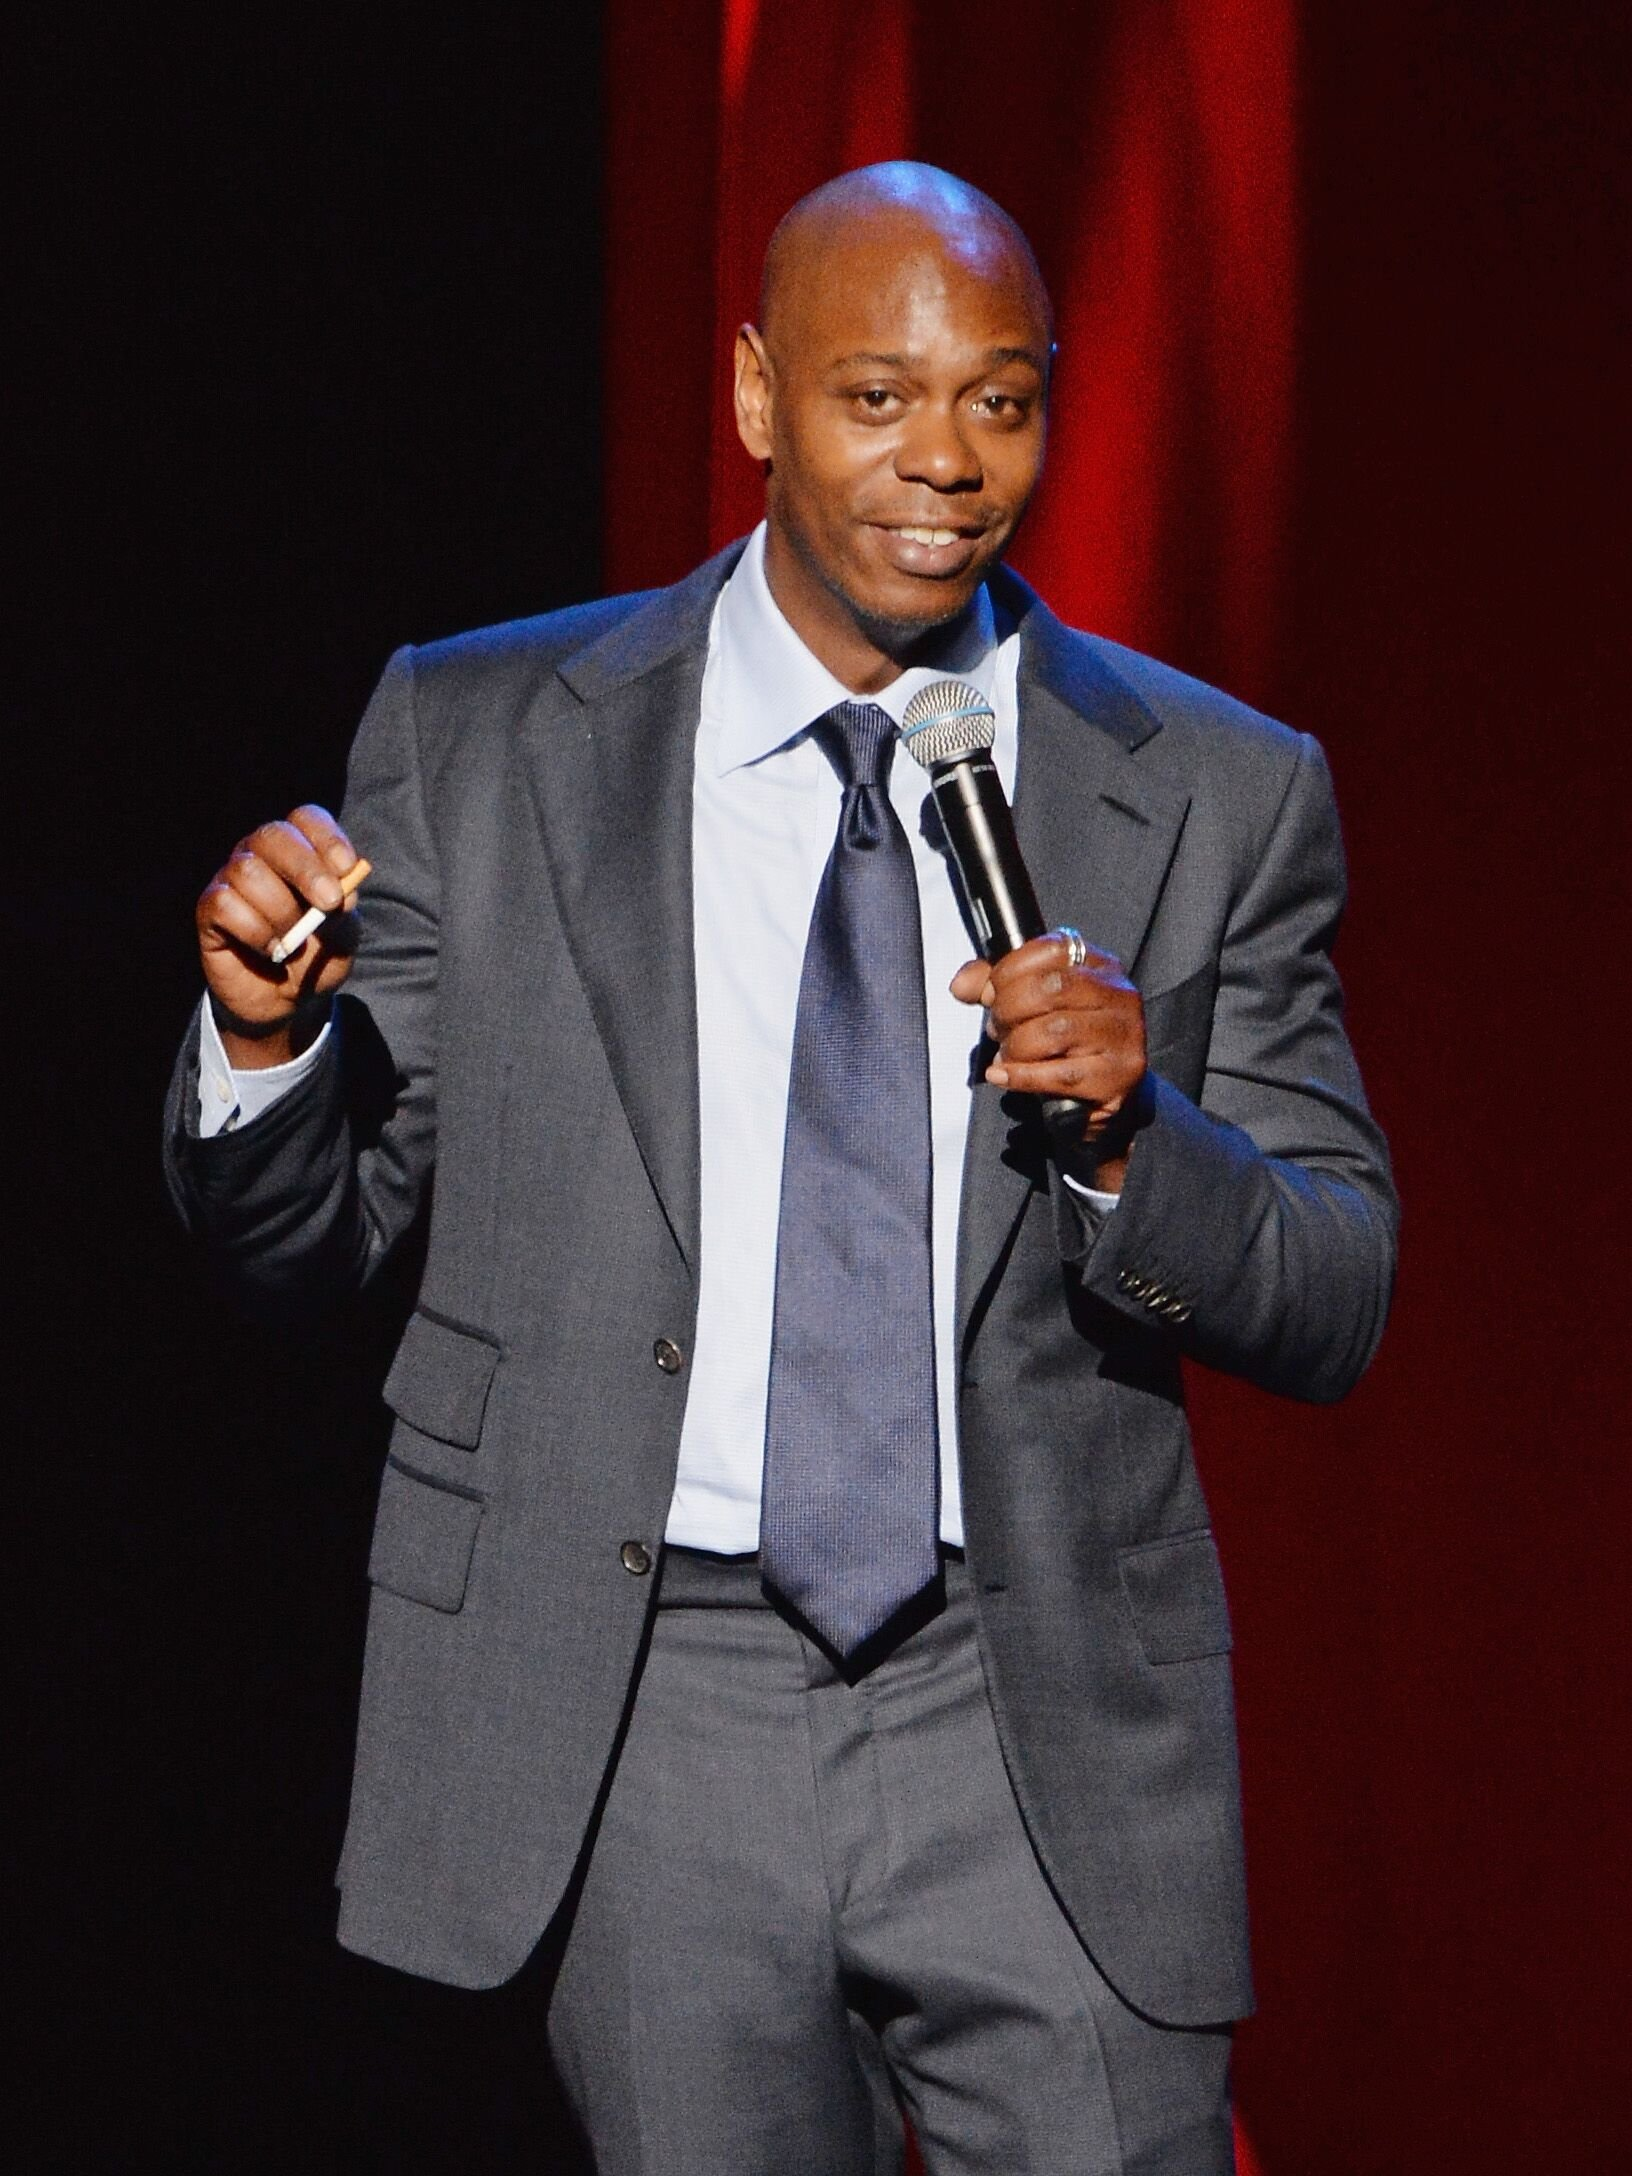 Dave Chappelle. Image Credit: Getty Images